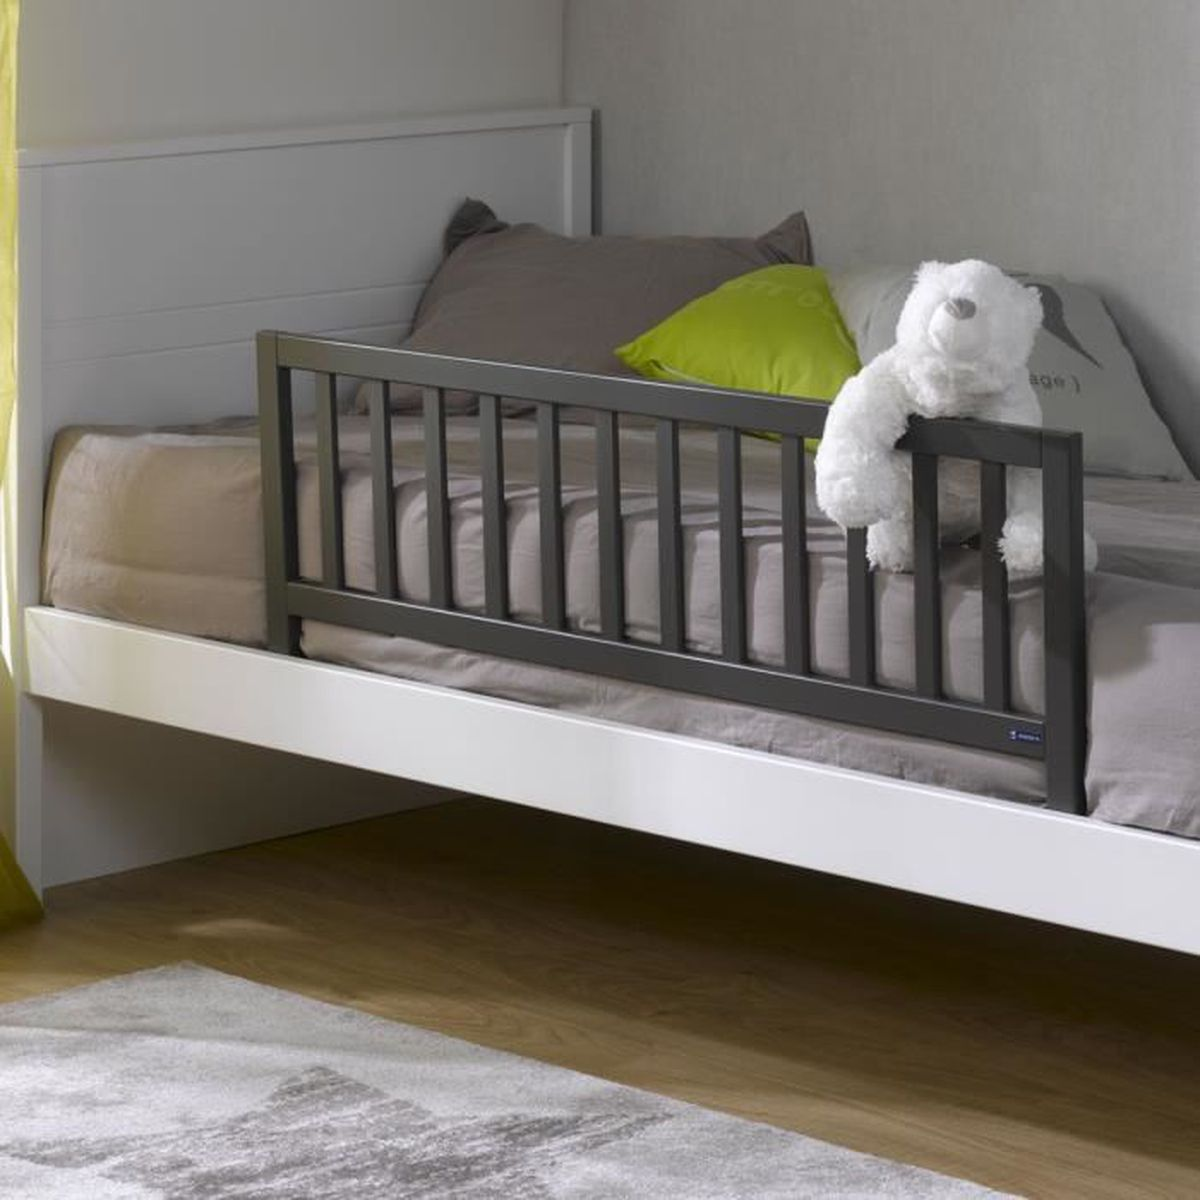 barriere de lit enfant en bois gris anthracite gris anthracite achat vente barri re de lit. Black Bedroom Furniture Sets. Home Design Ideas